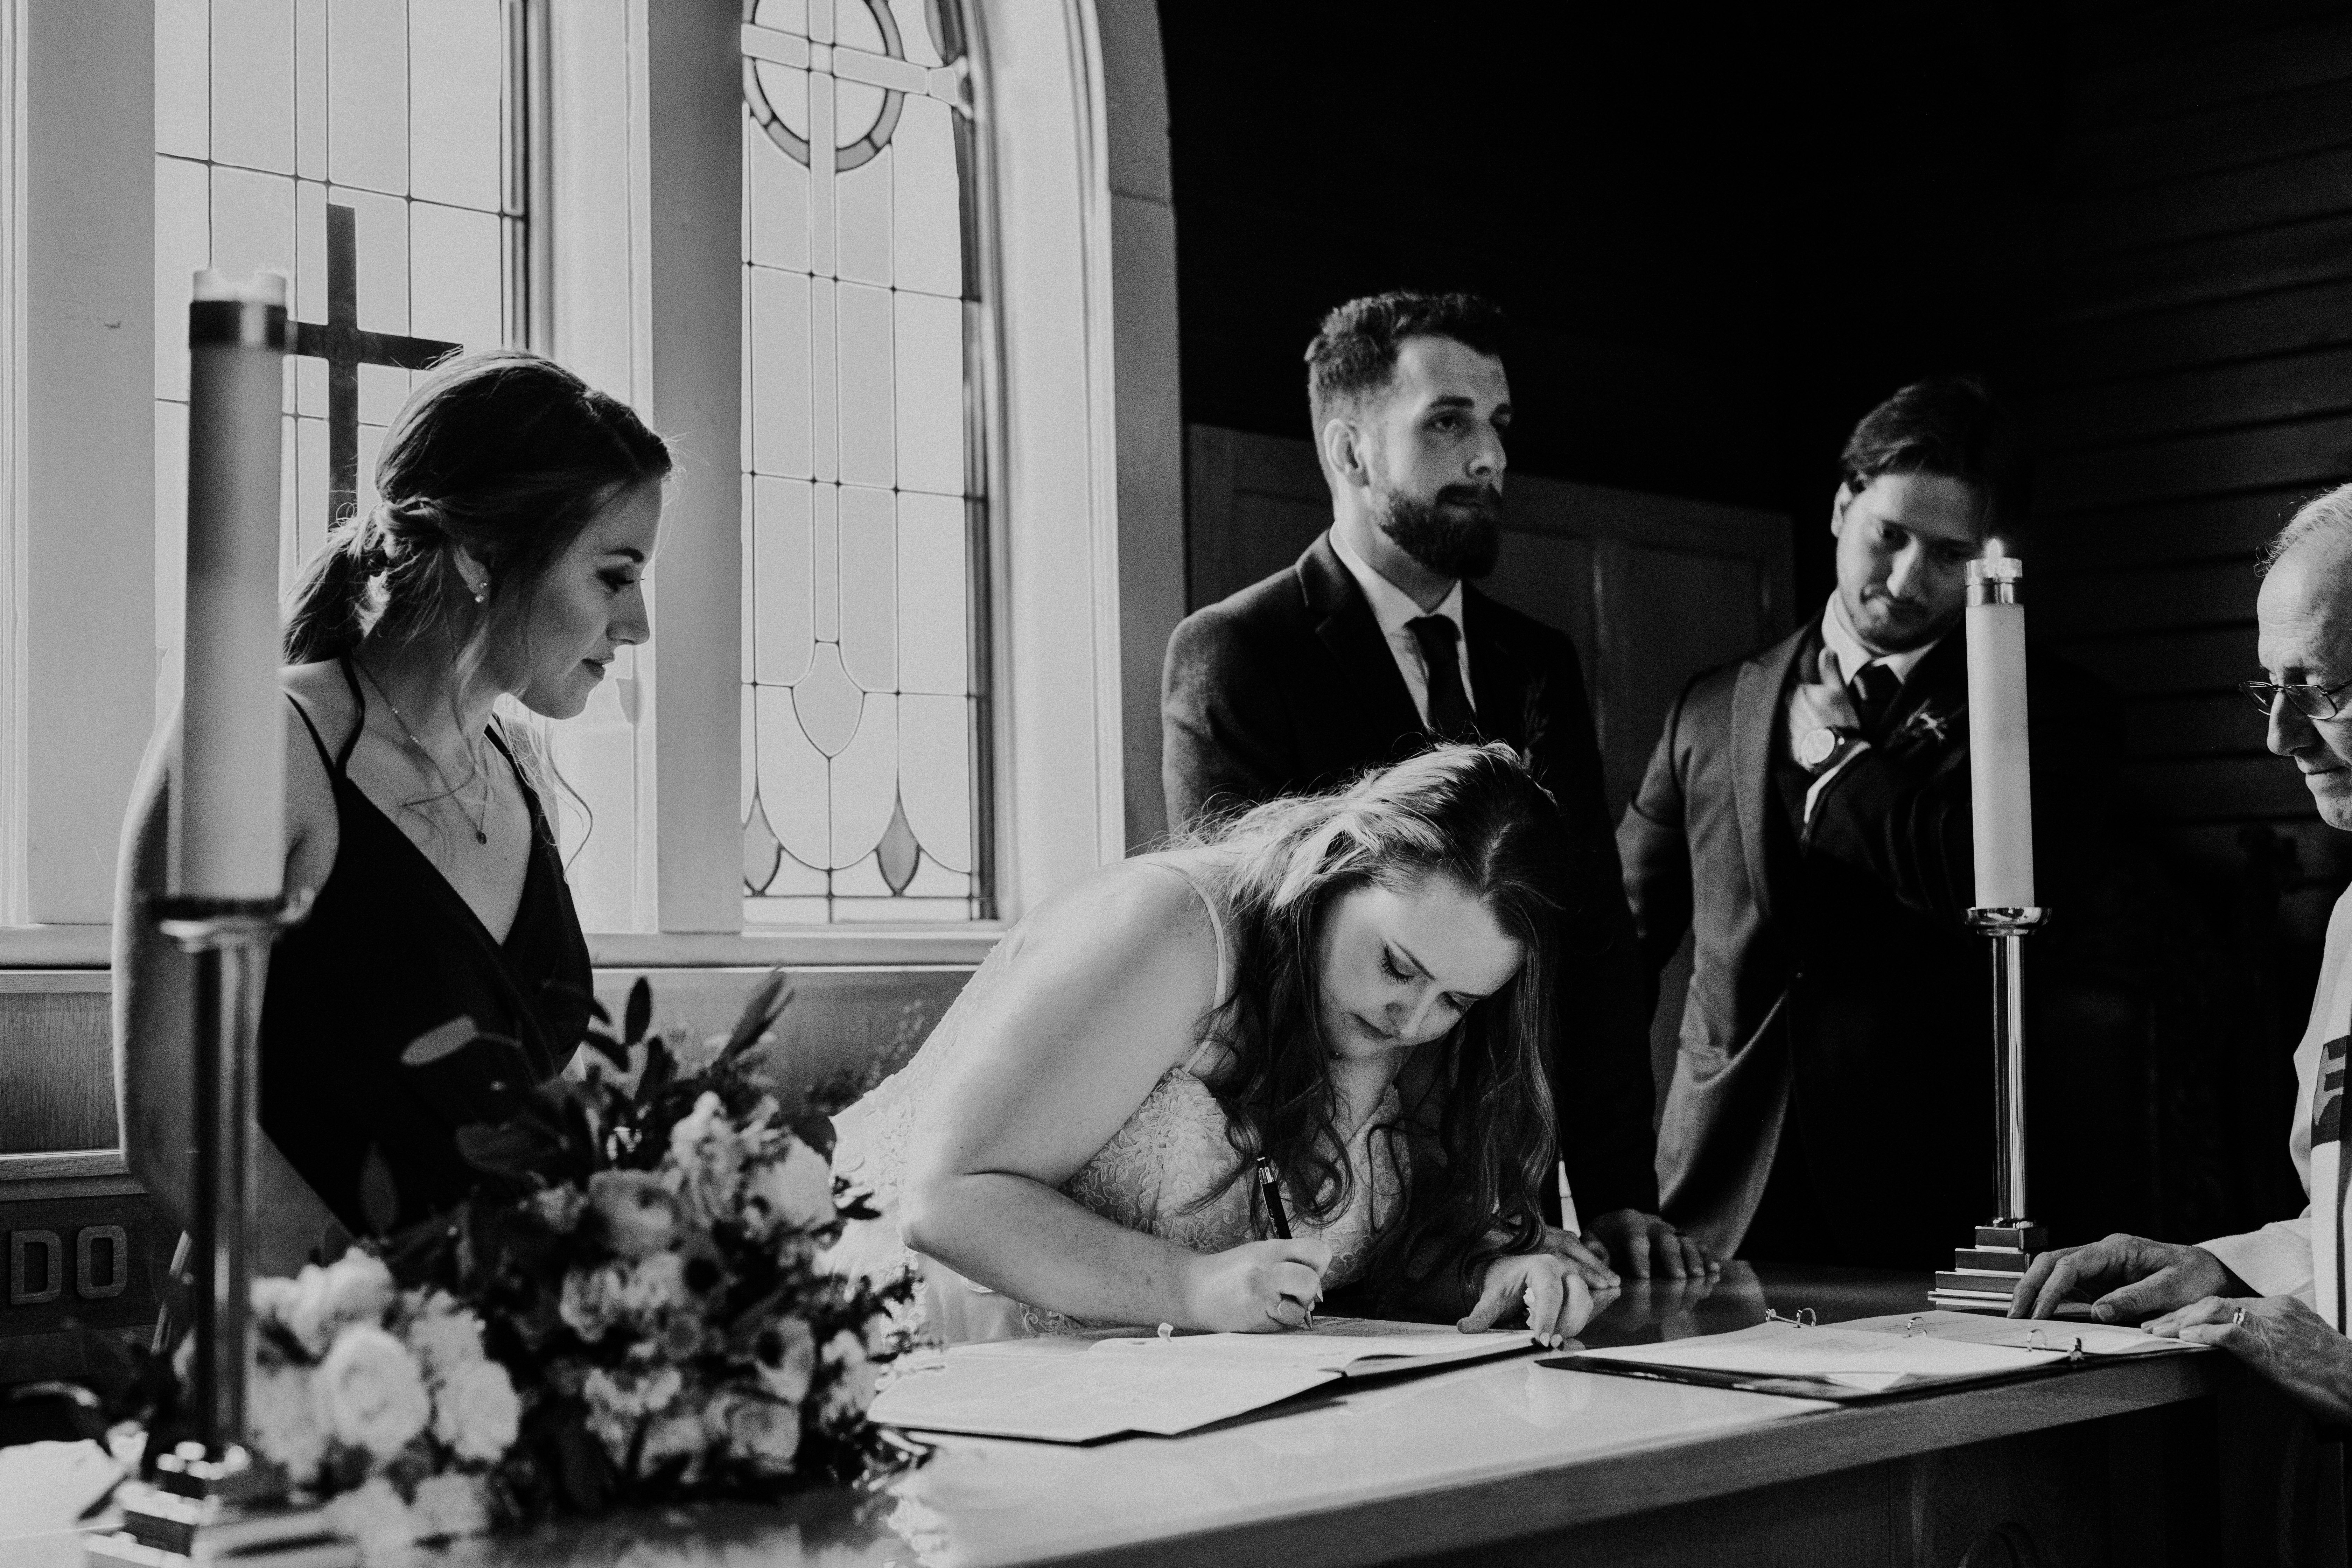 Banff Wedding - signing the marriage liscence